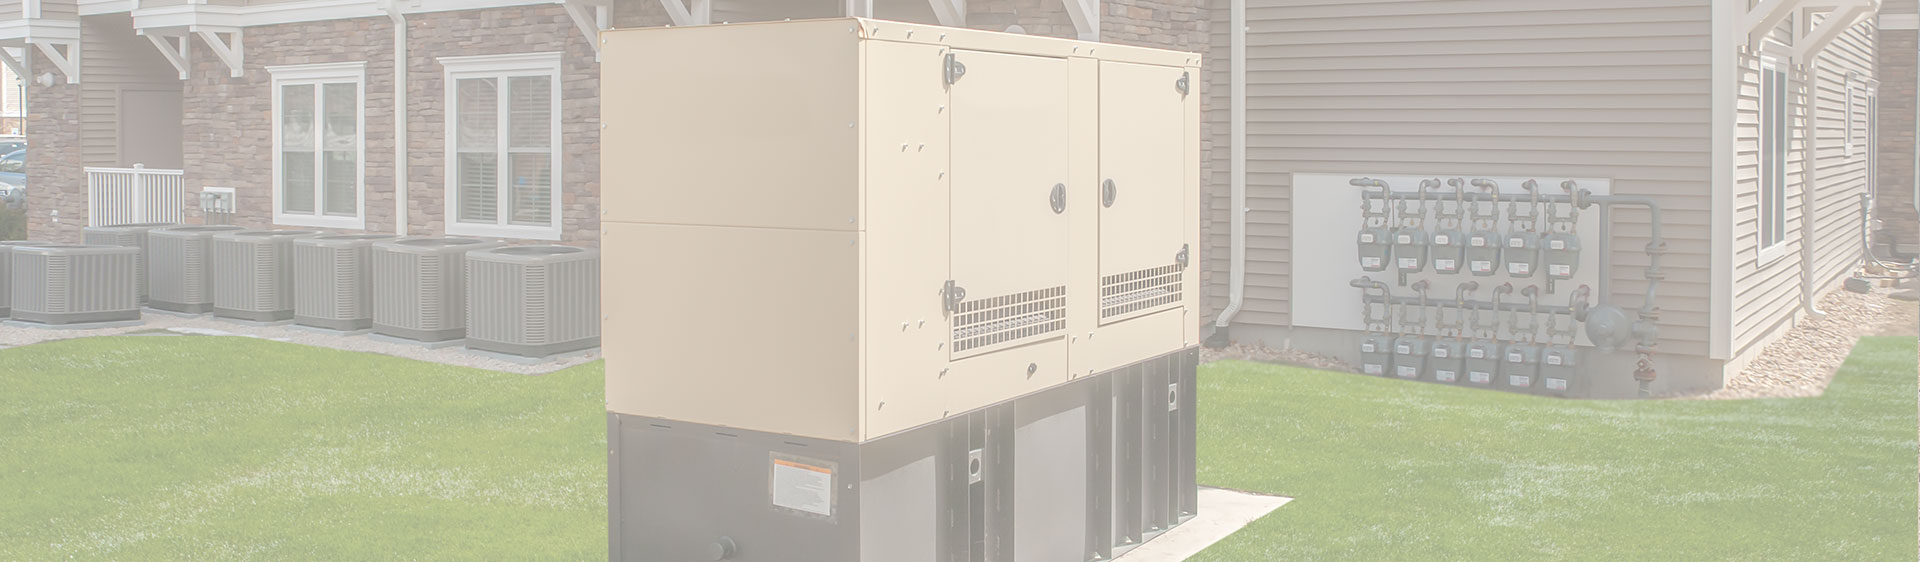 Moncks Corner Generator Installation Services, Generators For Sale and Residential Electrician